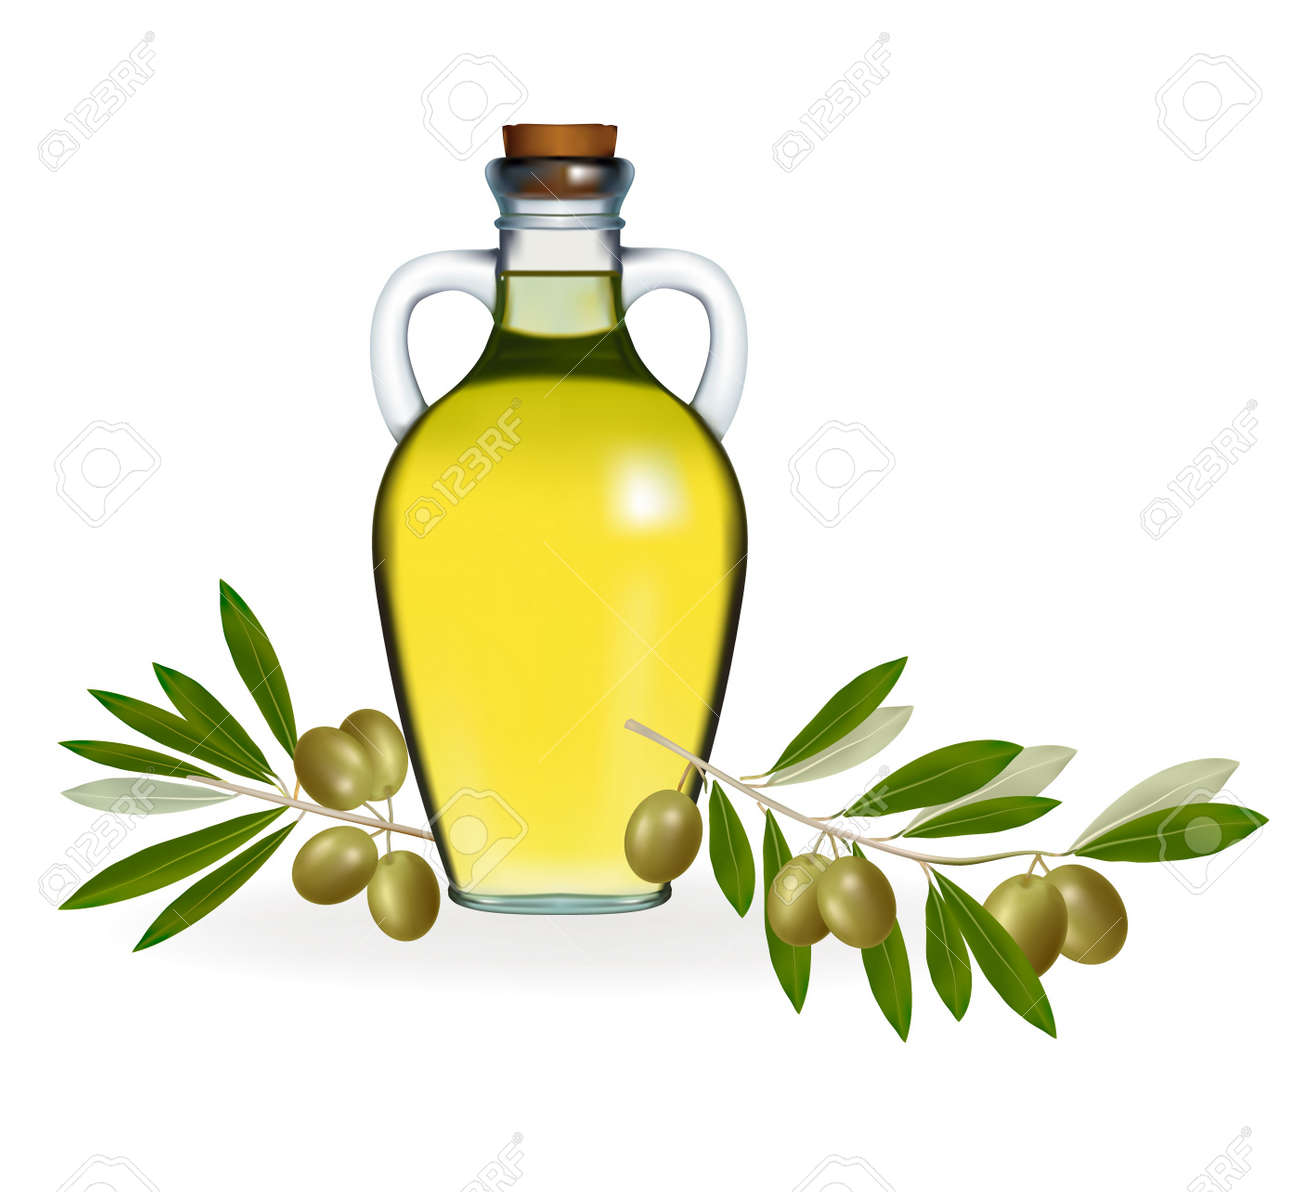 Vector illustration. Green olives with bottle of olive oil. Stock Vector - 9934470